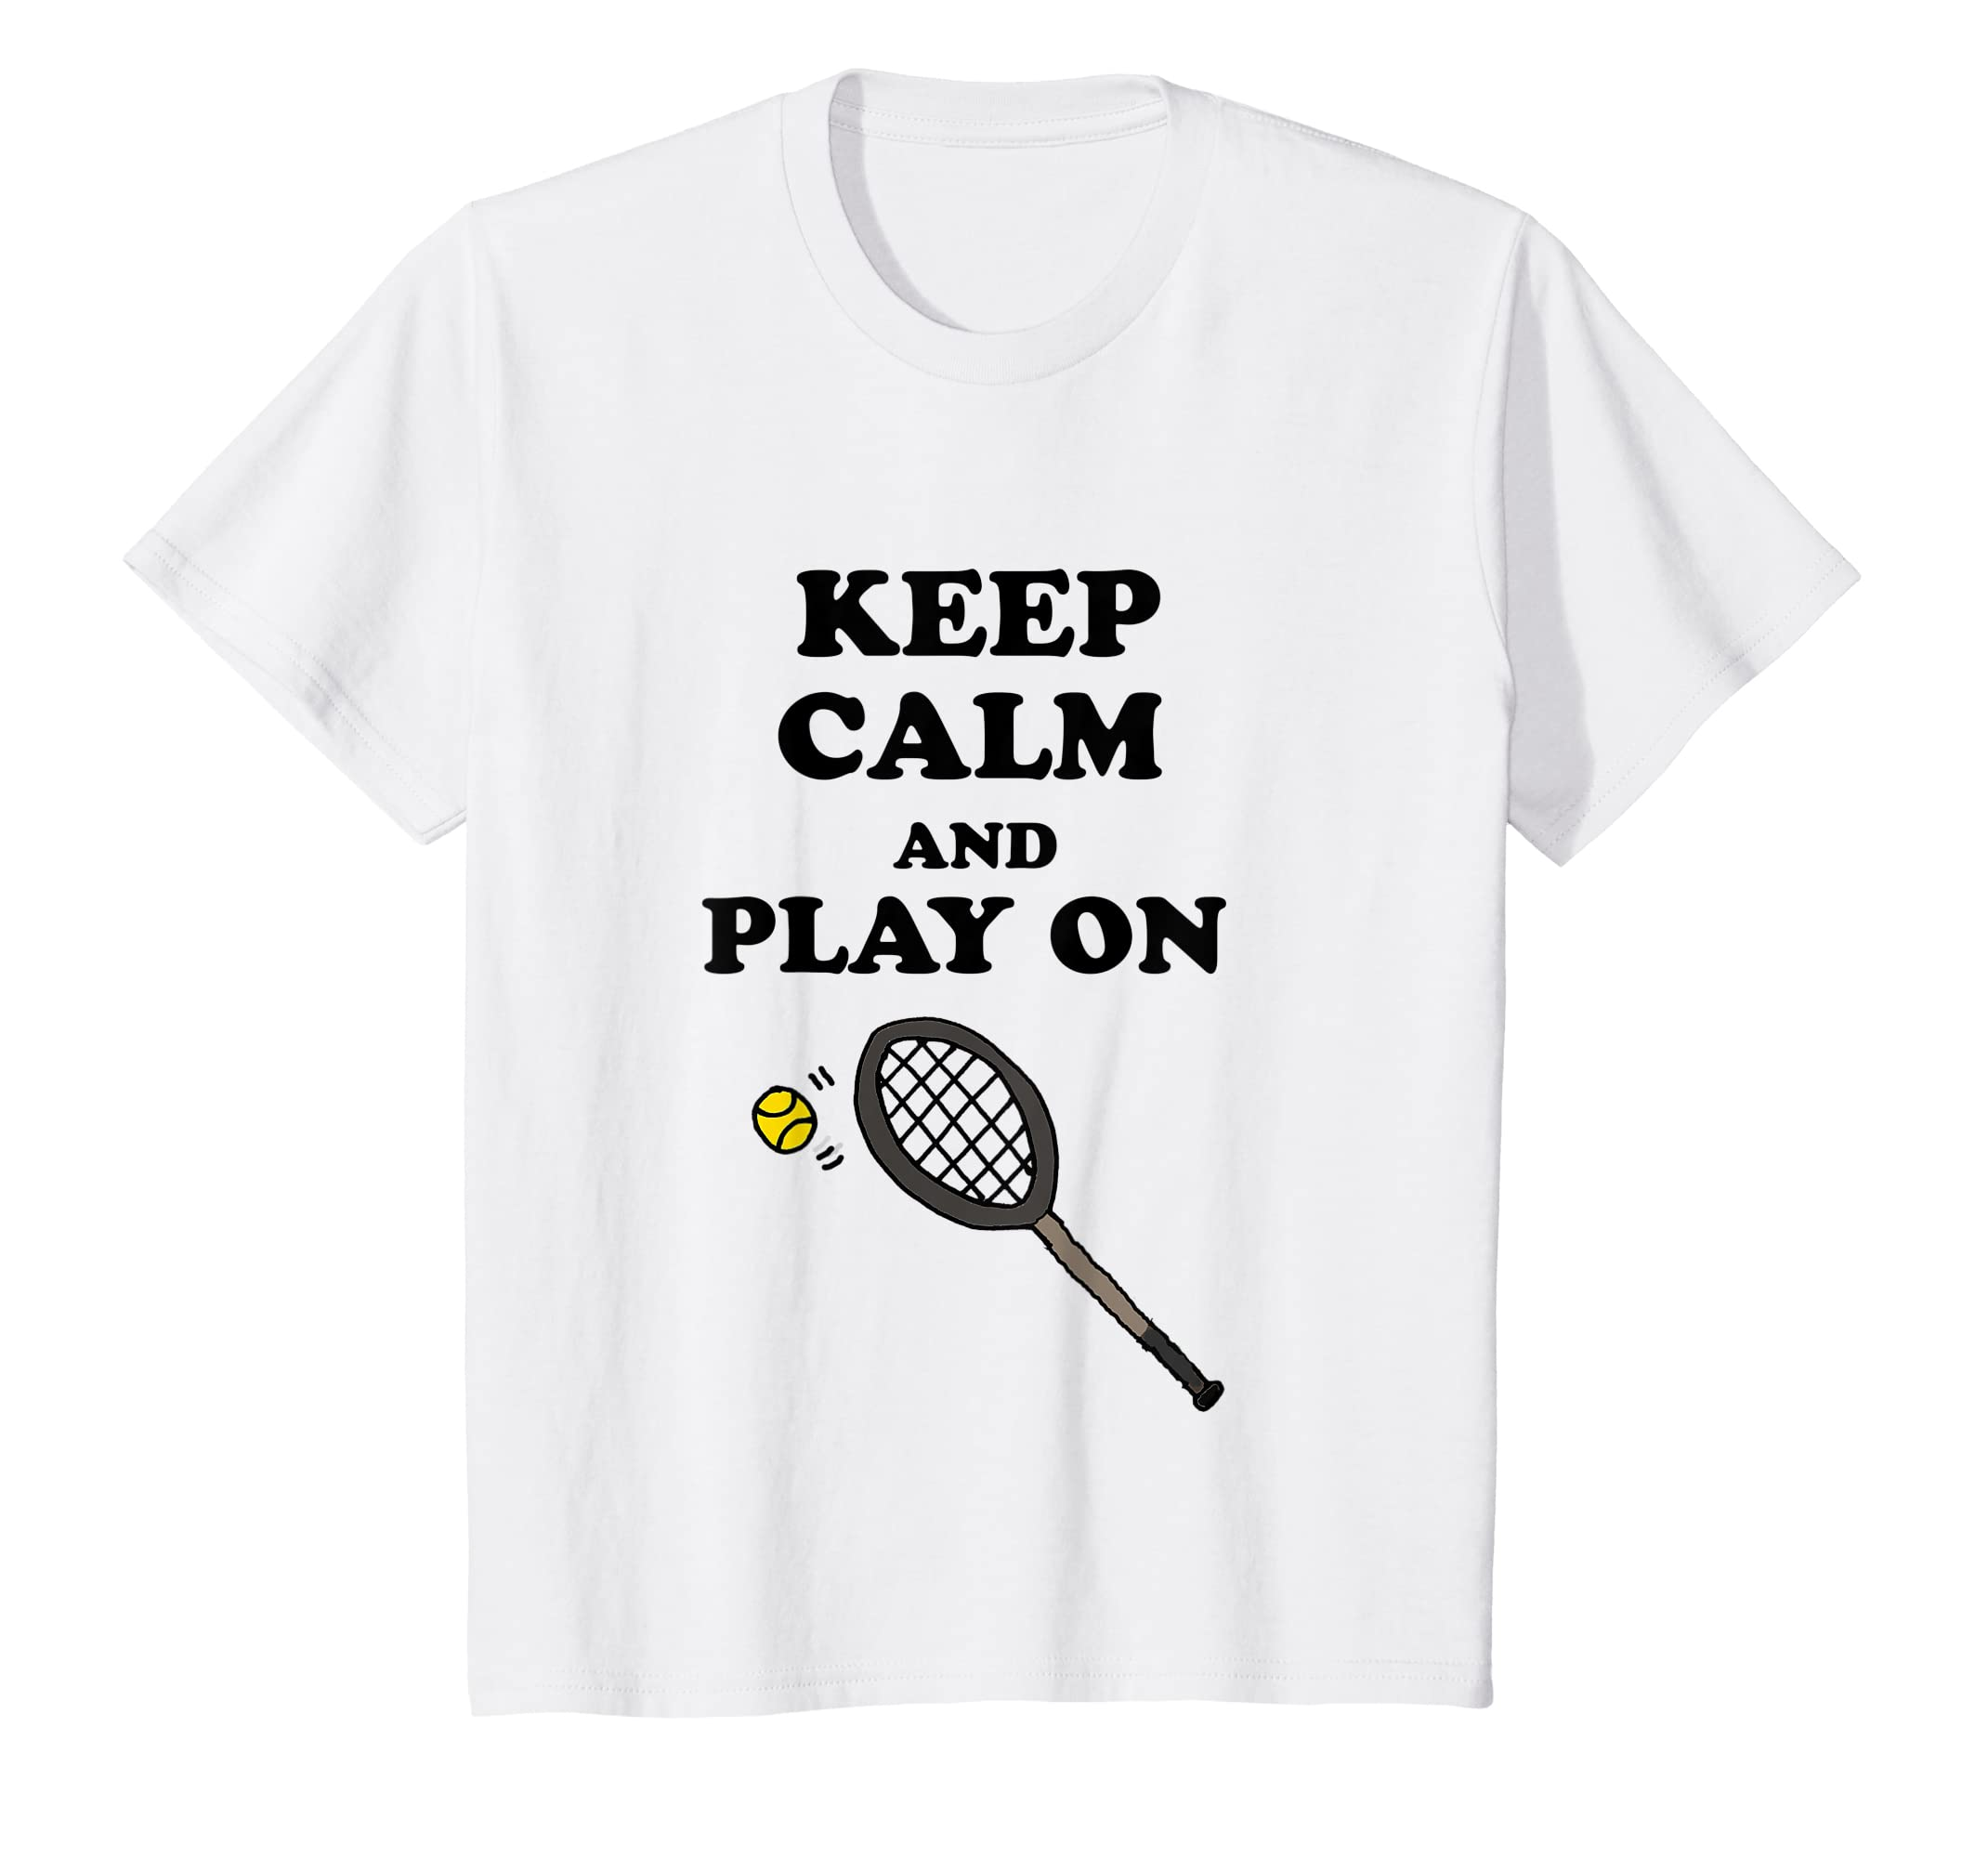 Amazon.com: Smilealottees Funny Keep Calm and Play on Tennis T-shirt: Clothing